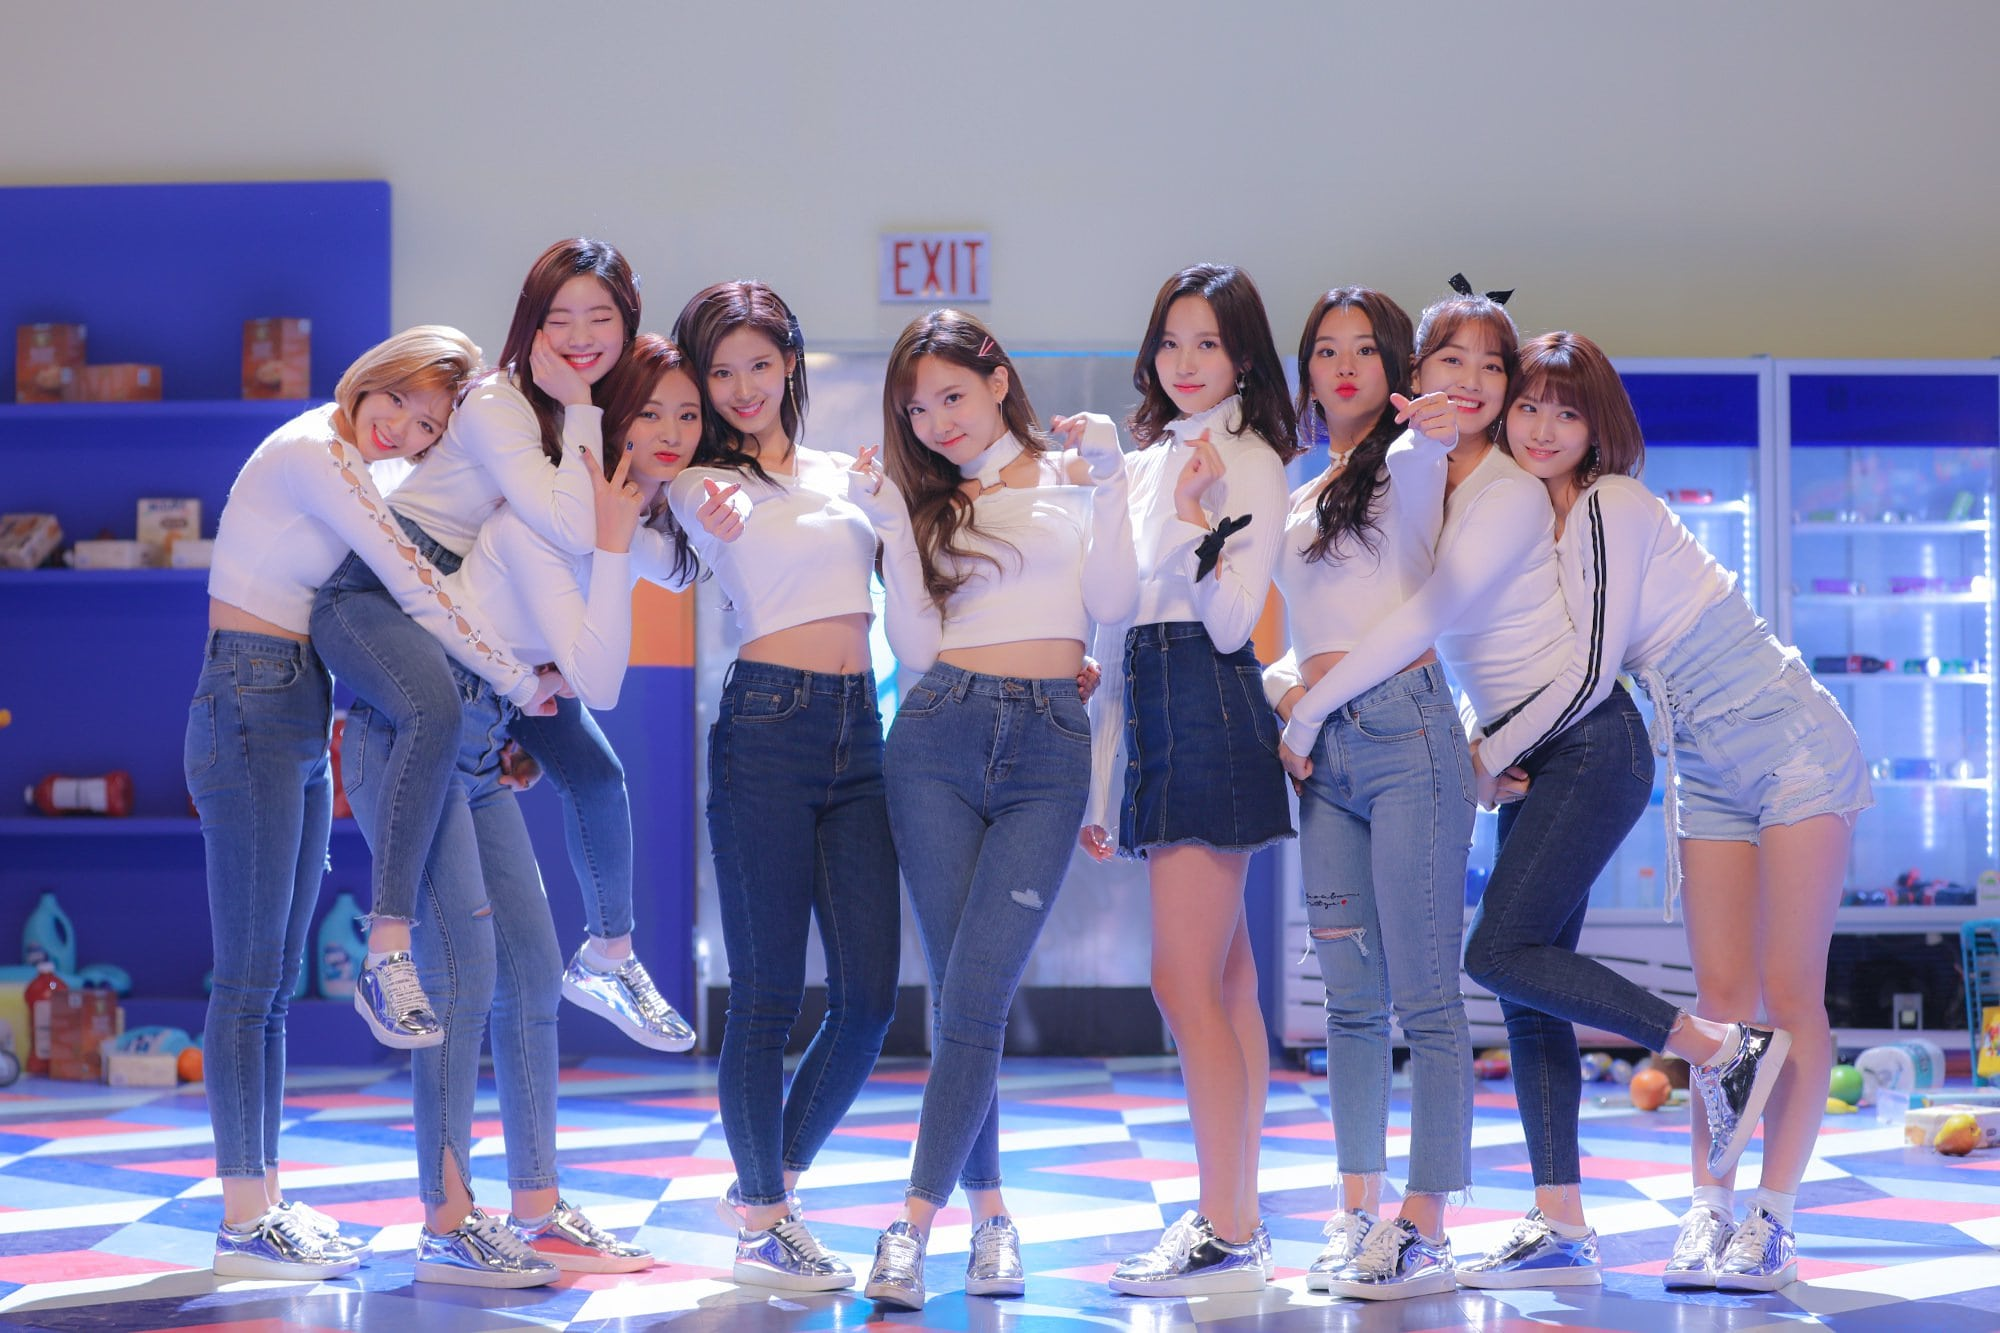 Twice S Easy To Wear Mv Outfits We Want To Steal For Our Own